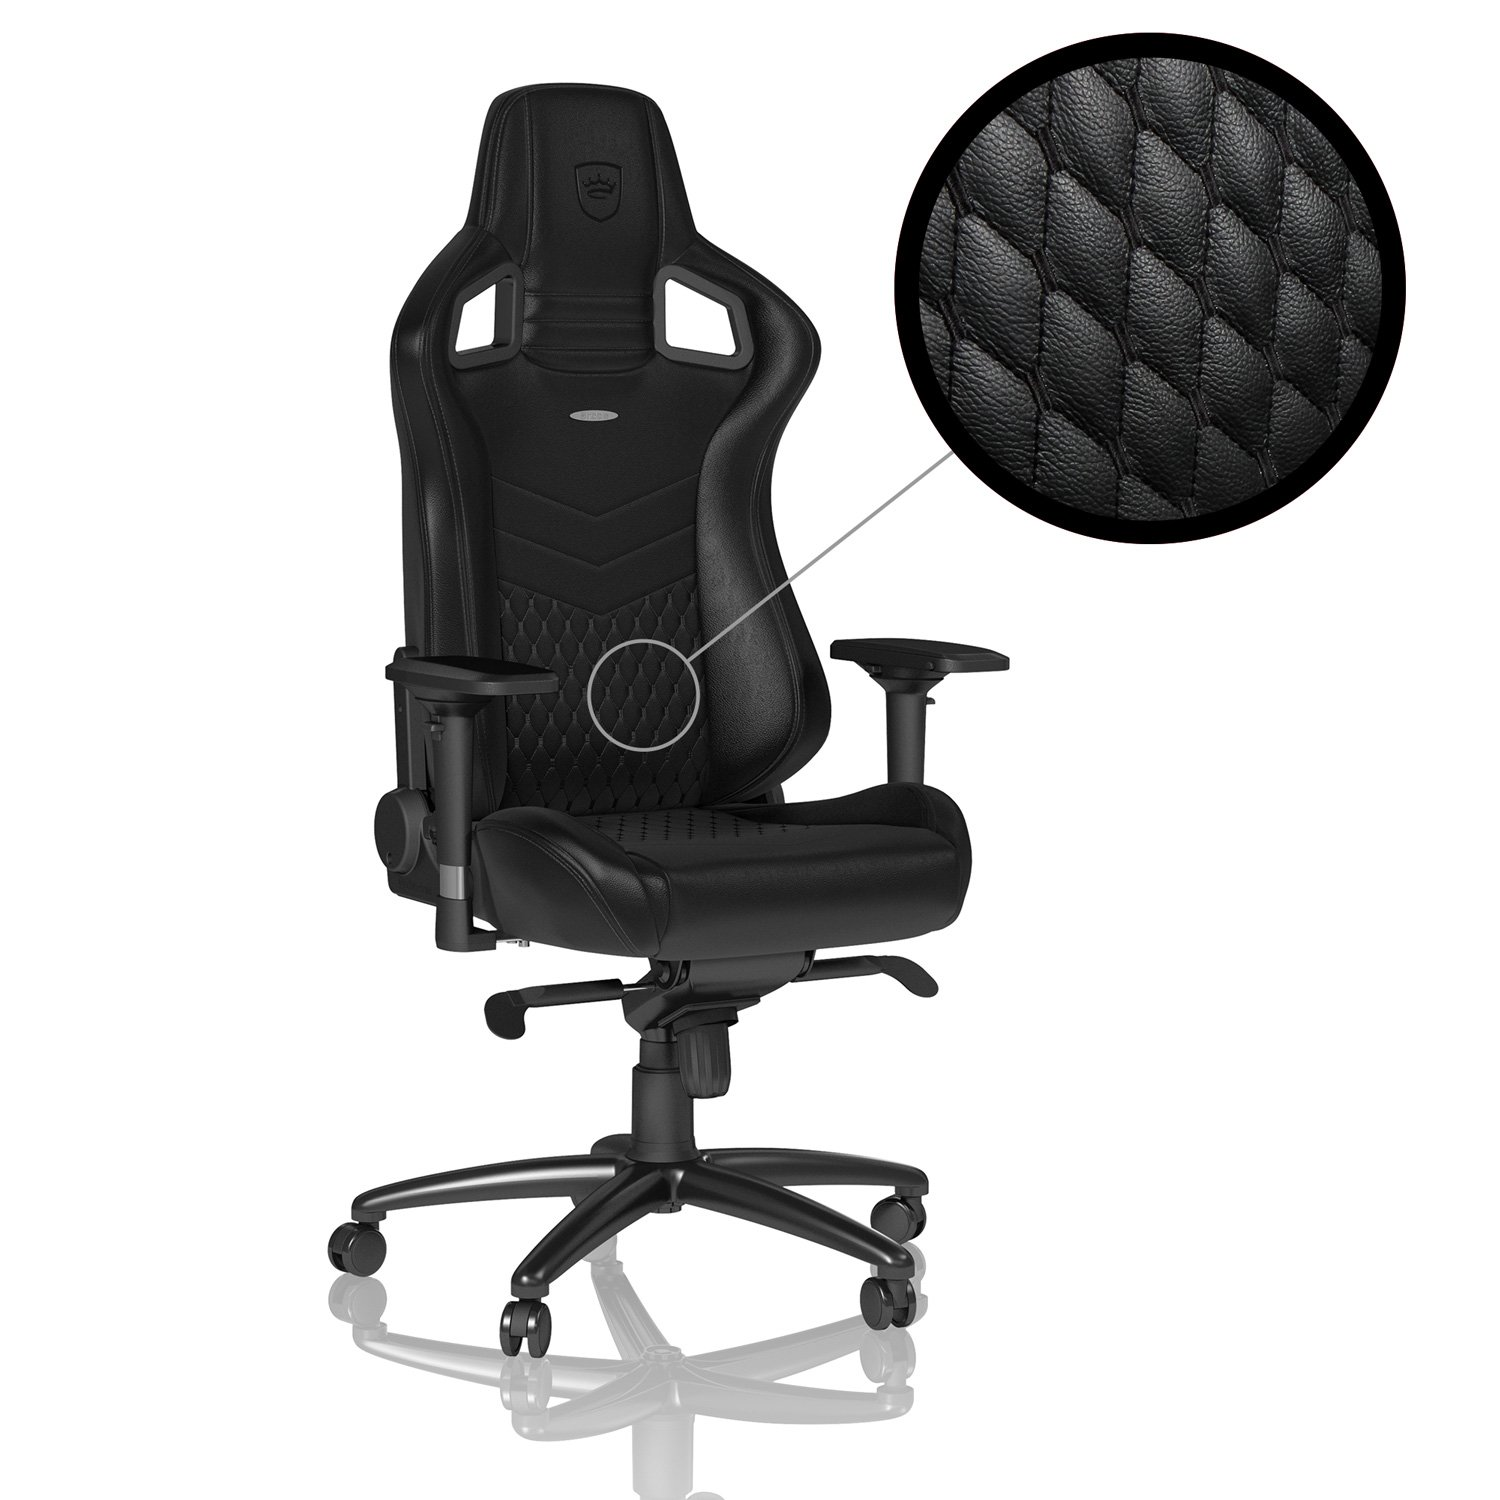 noblechairs EPIC Real Leather - Black - Gaming Chair / Office Chair / Desk Chair